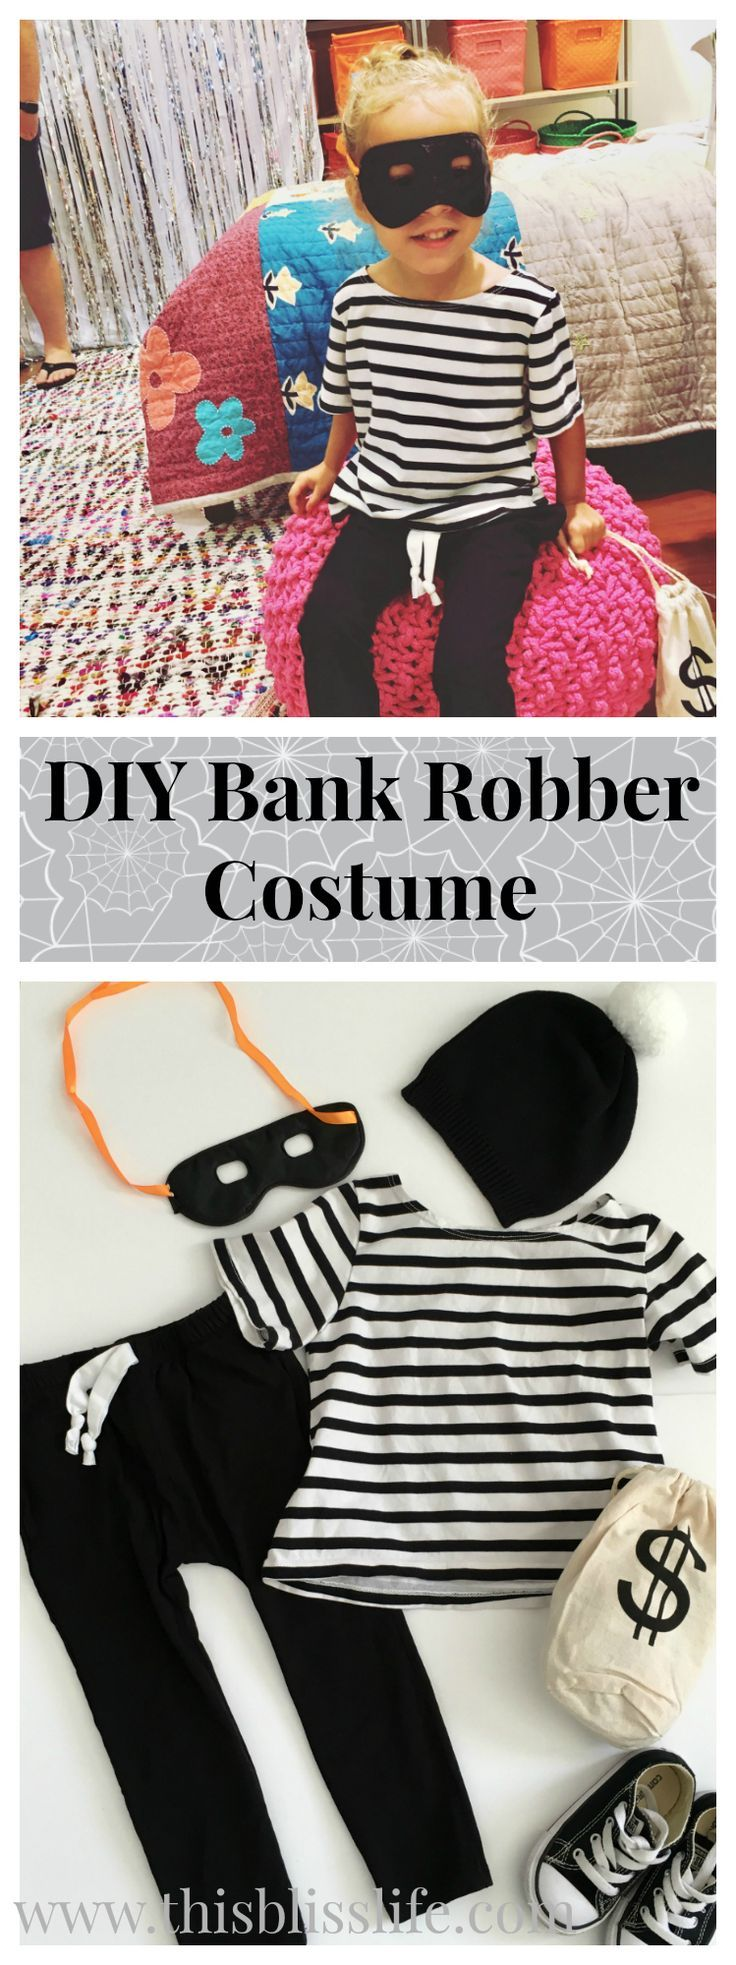 DIY Bank Robber Costume for Kids! | www.thisblisslife.com